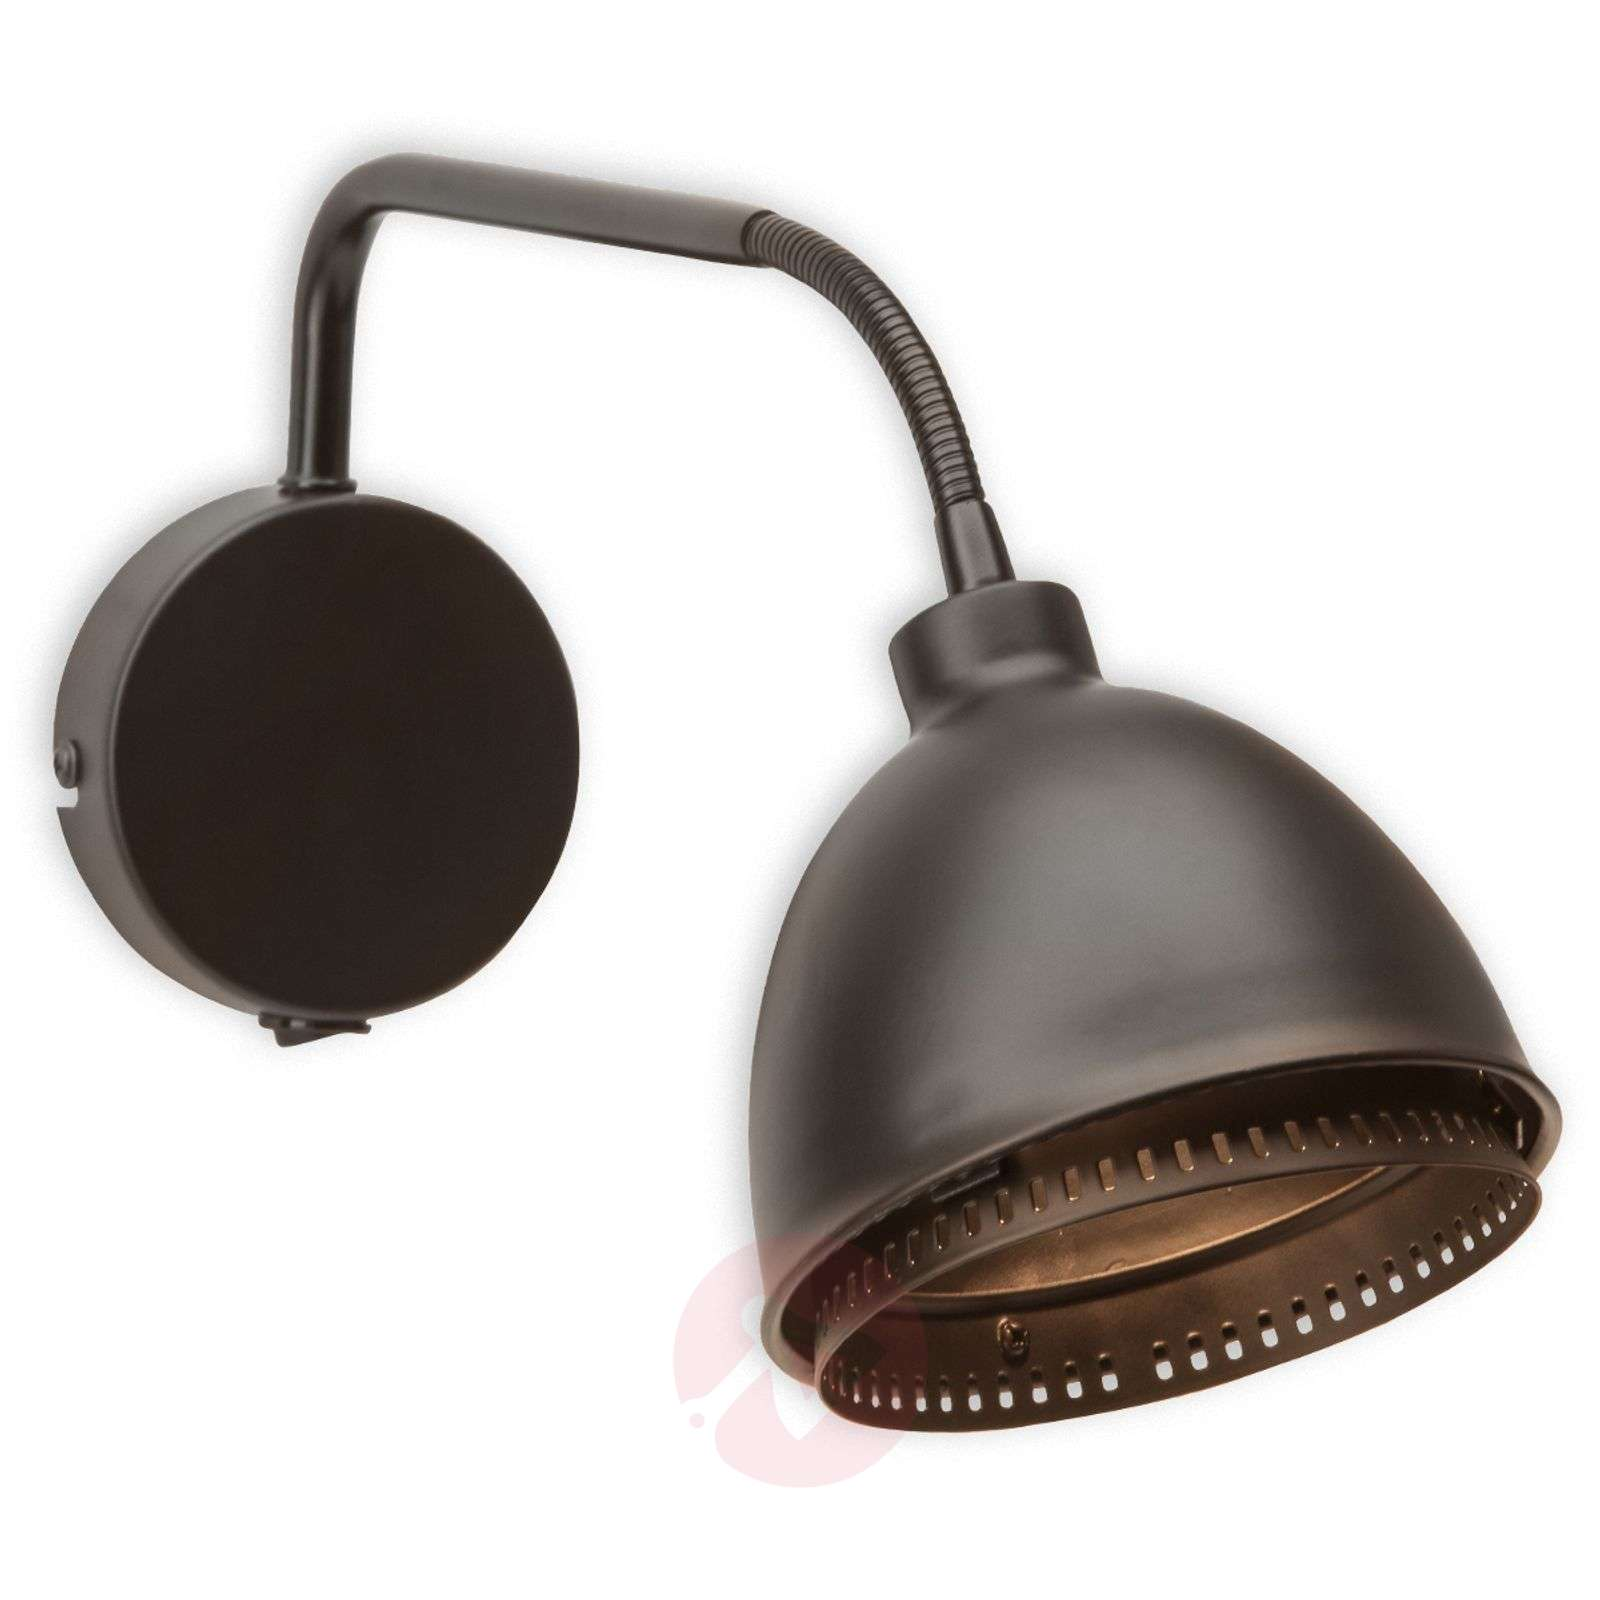 Skirt black wall light with an industrial design-1509065-01